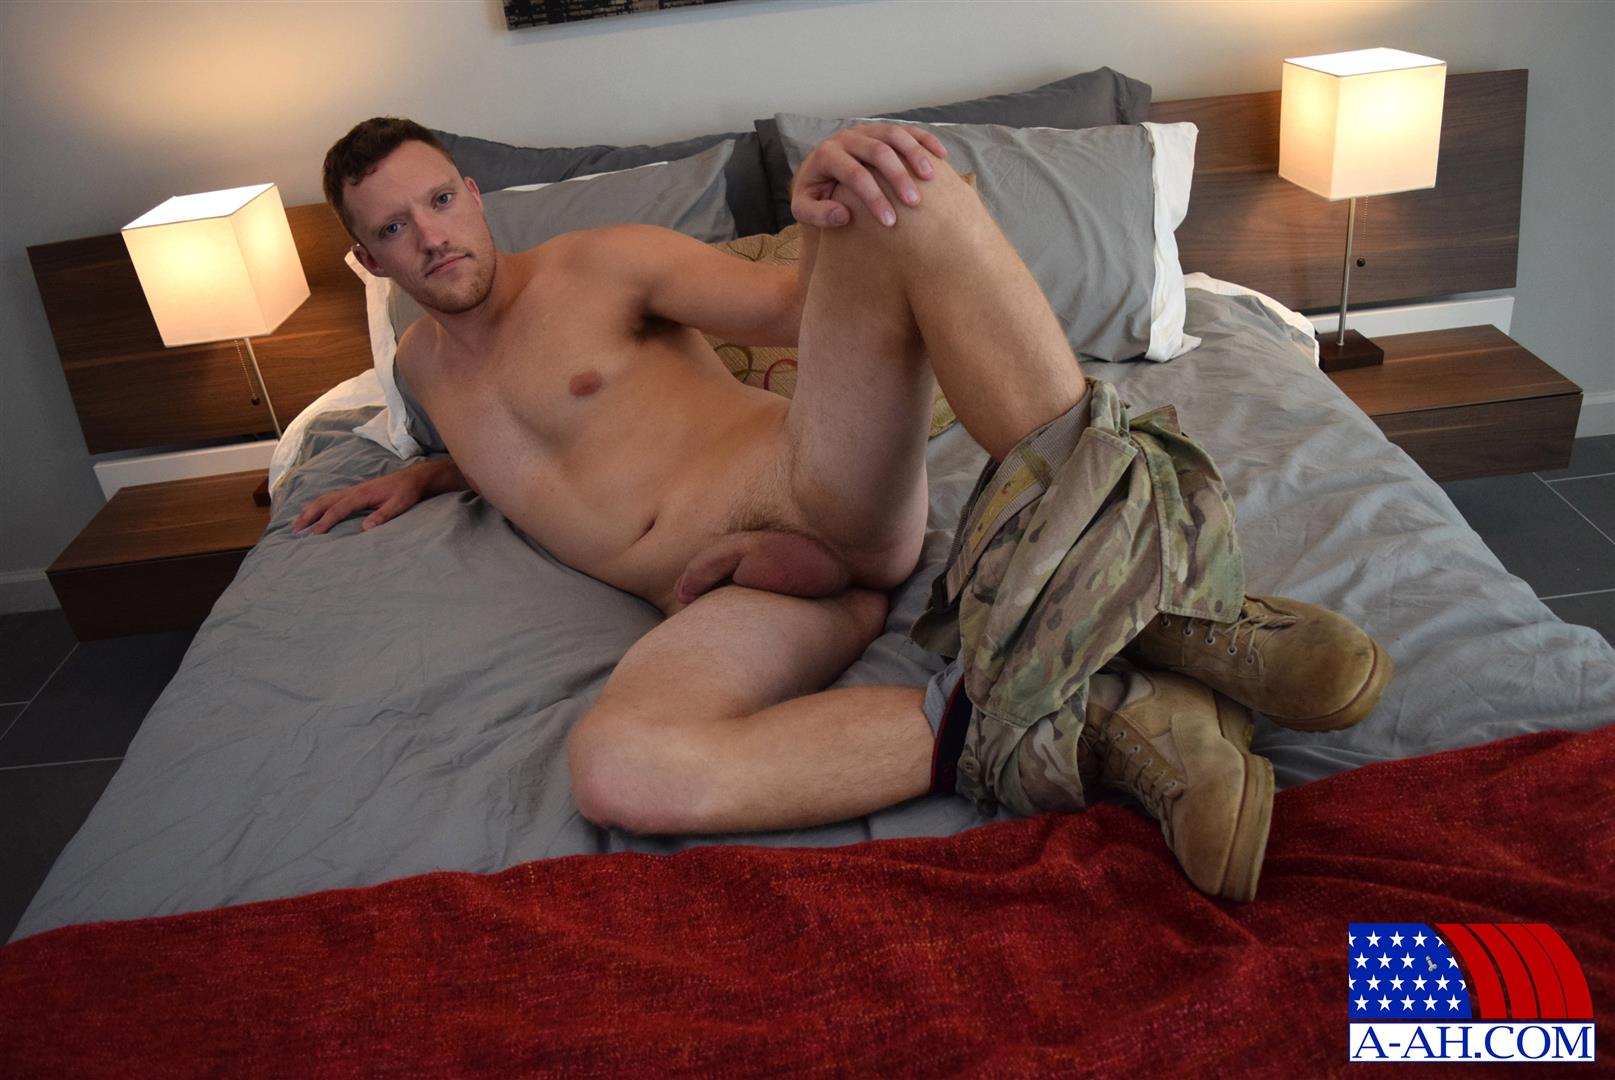 All American Heroes Randy Army Sergeant Naked With A Big Cock Amateur Gay Porn 11 Army Sergeant Comes Out Of The Closet in Afghanistan